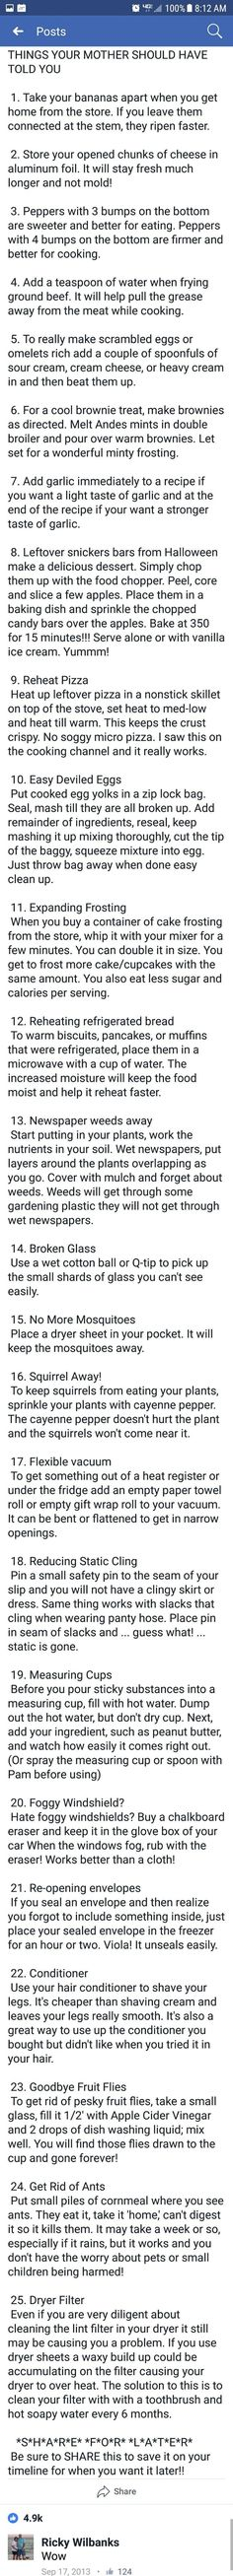 Life hacks for cooking and home.